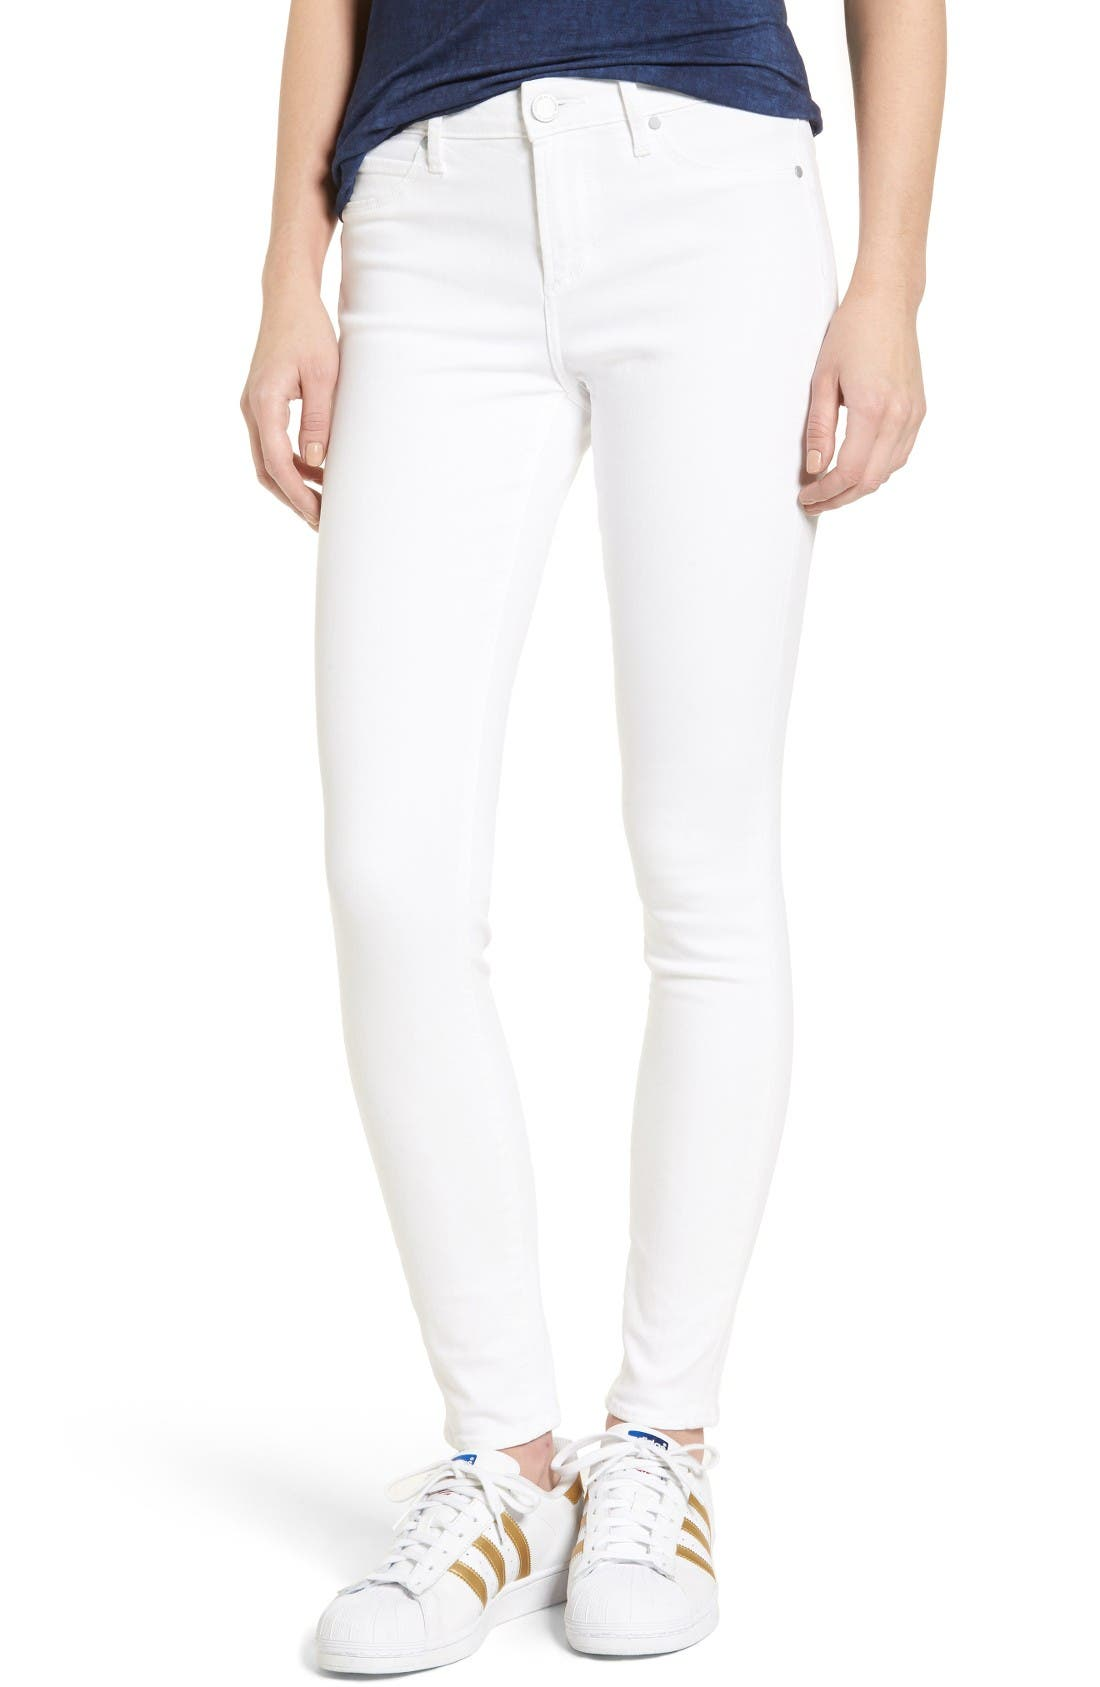 Alternate Image 1 Selected - Articles of Society Sarah Skinny Jeans (Clear White)